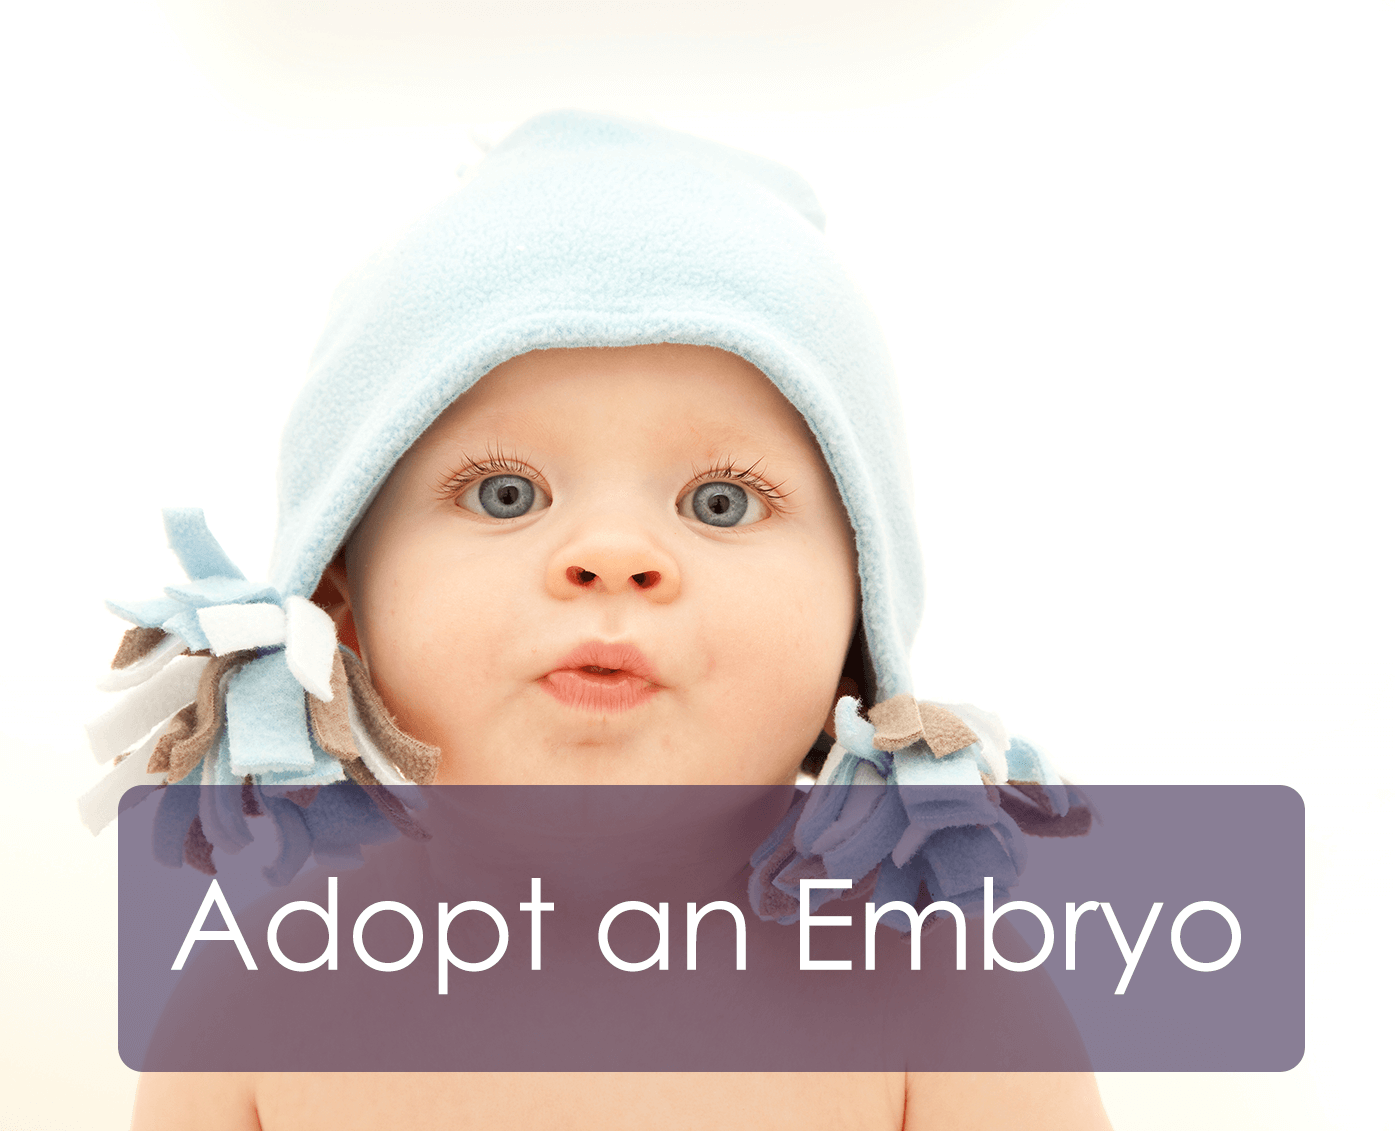 Adopt an Embryo